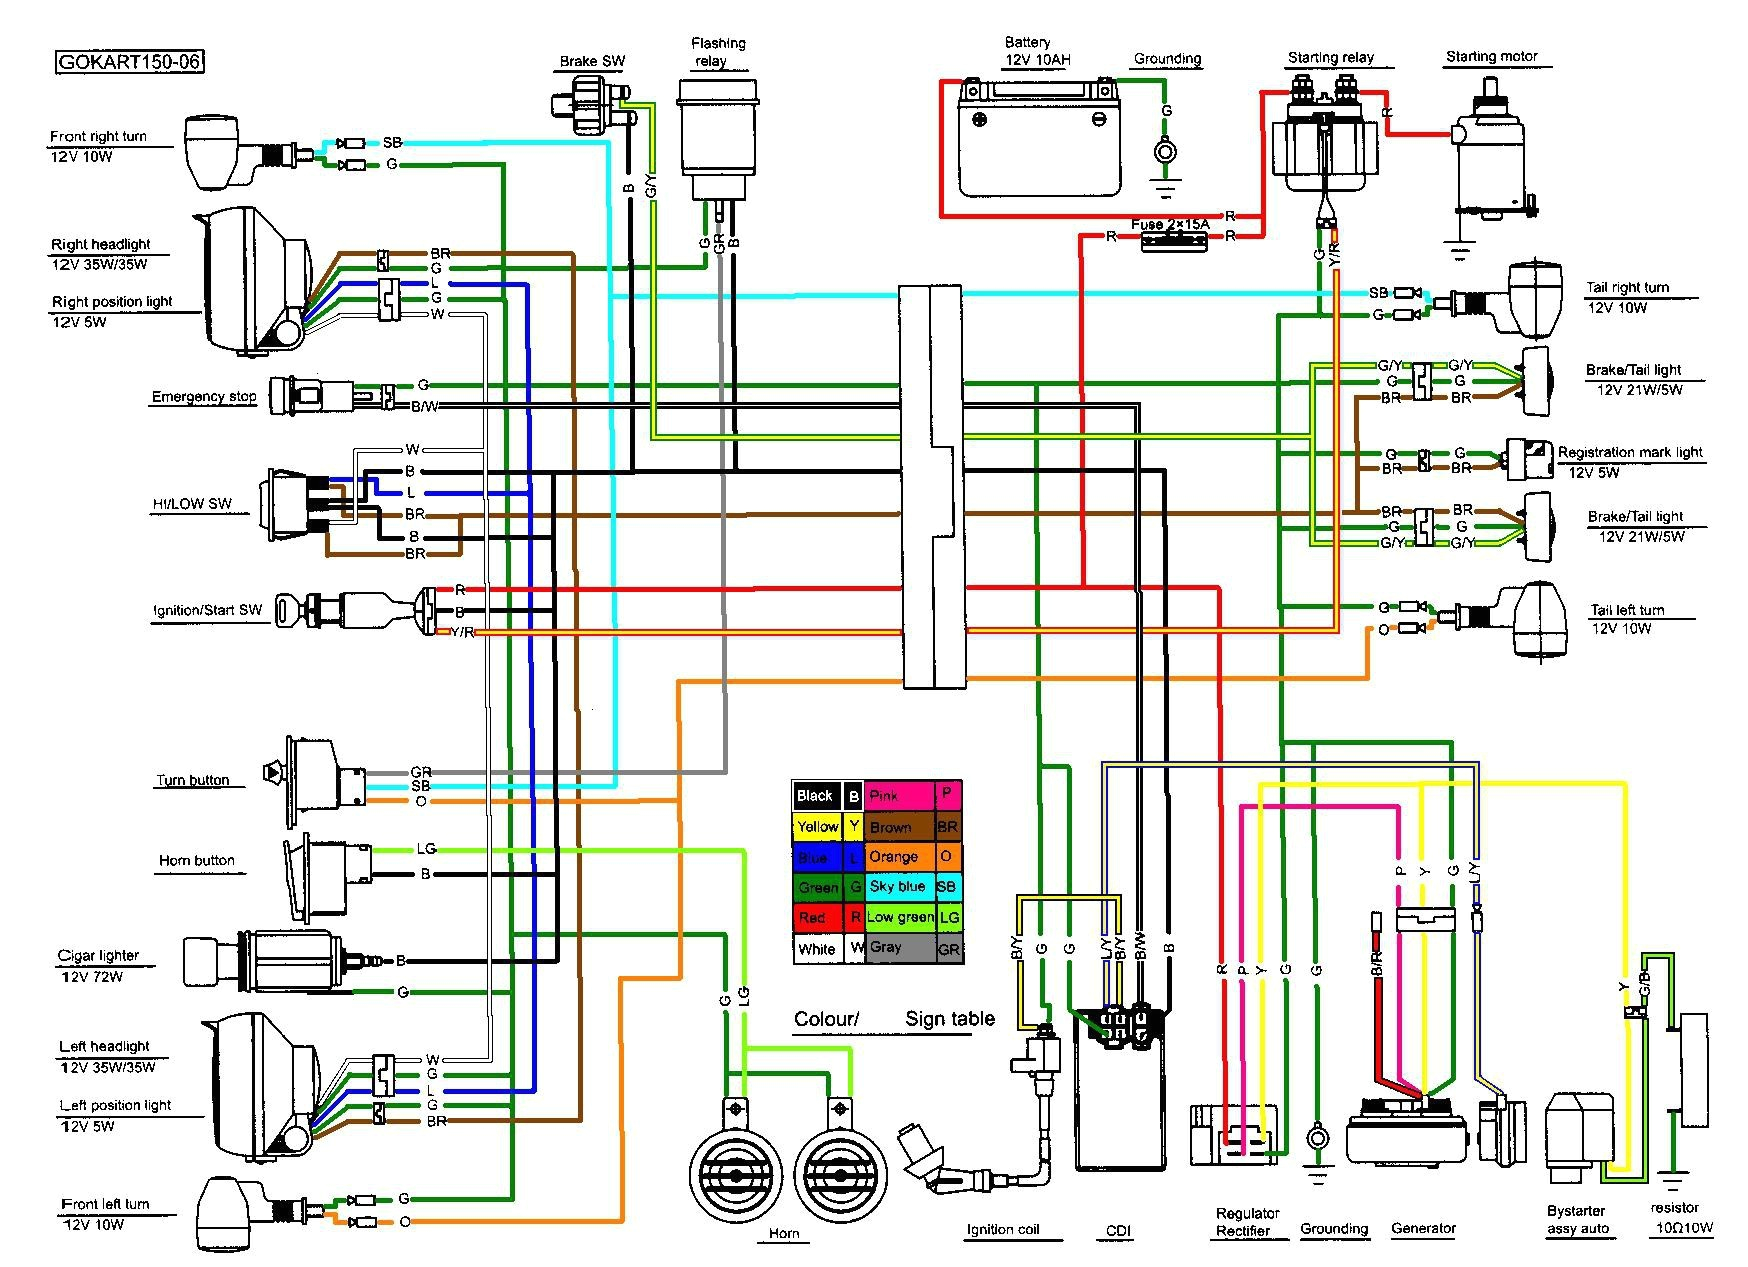 tank scooter wiring diagram for wiring diagram centre bird scooter wire diagram scooter wire diagram